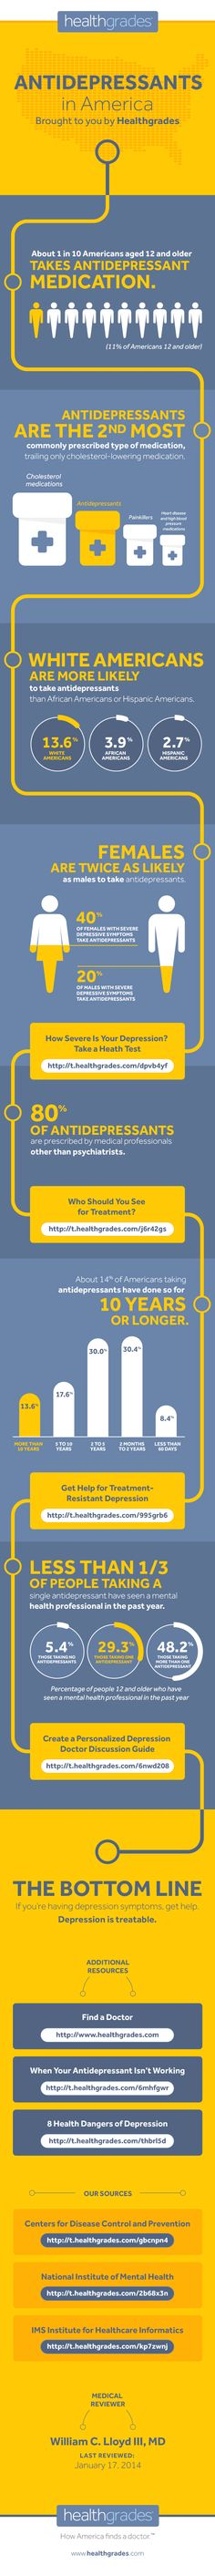 Healthgrades / 7 Facts about Antidepression